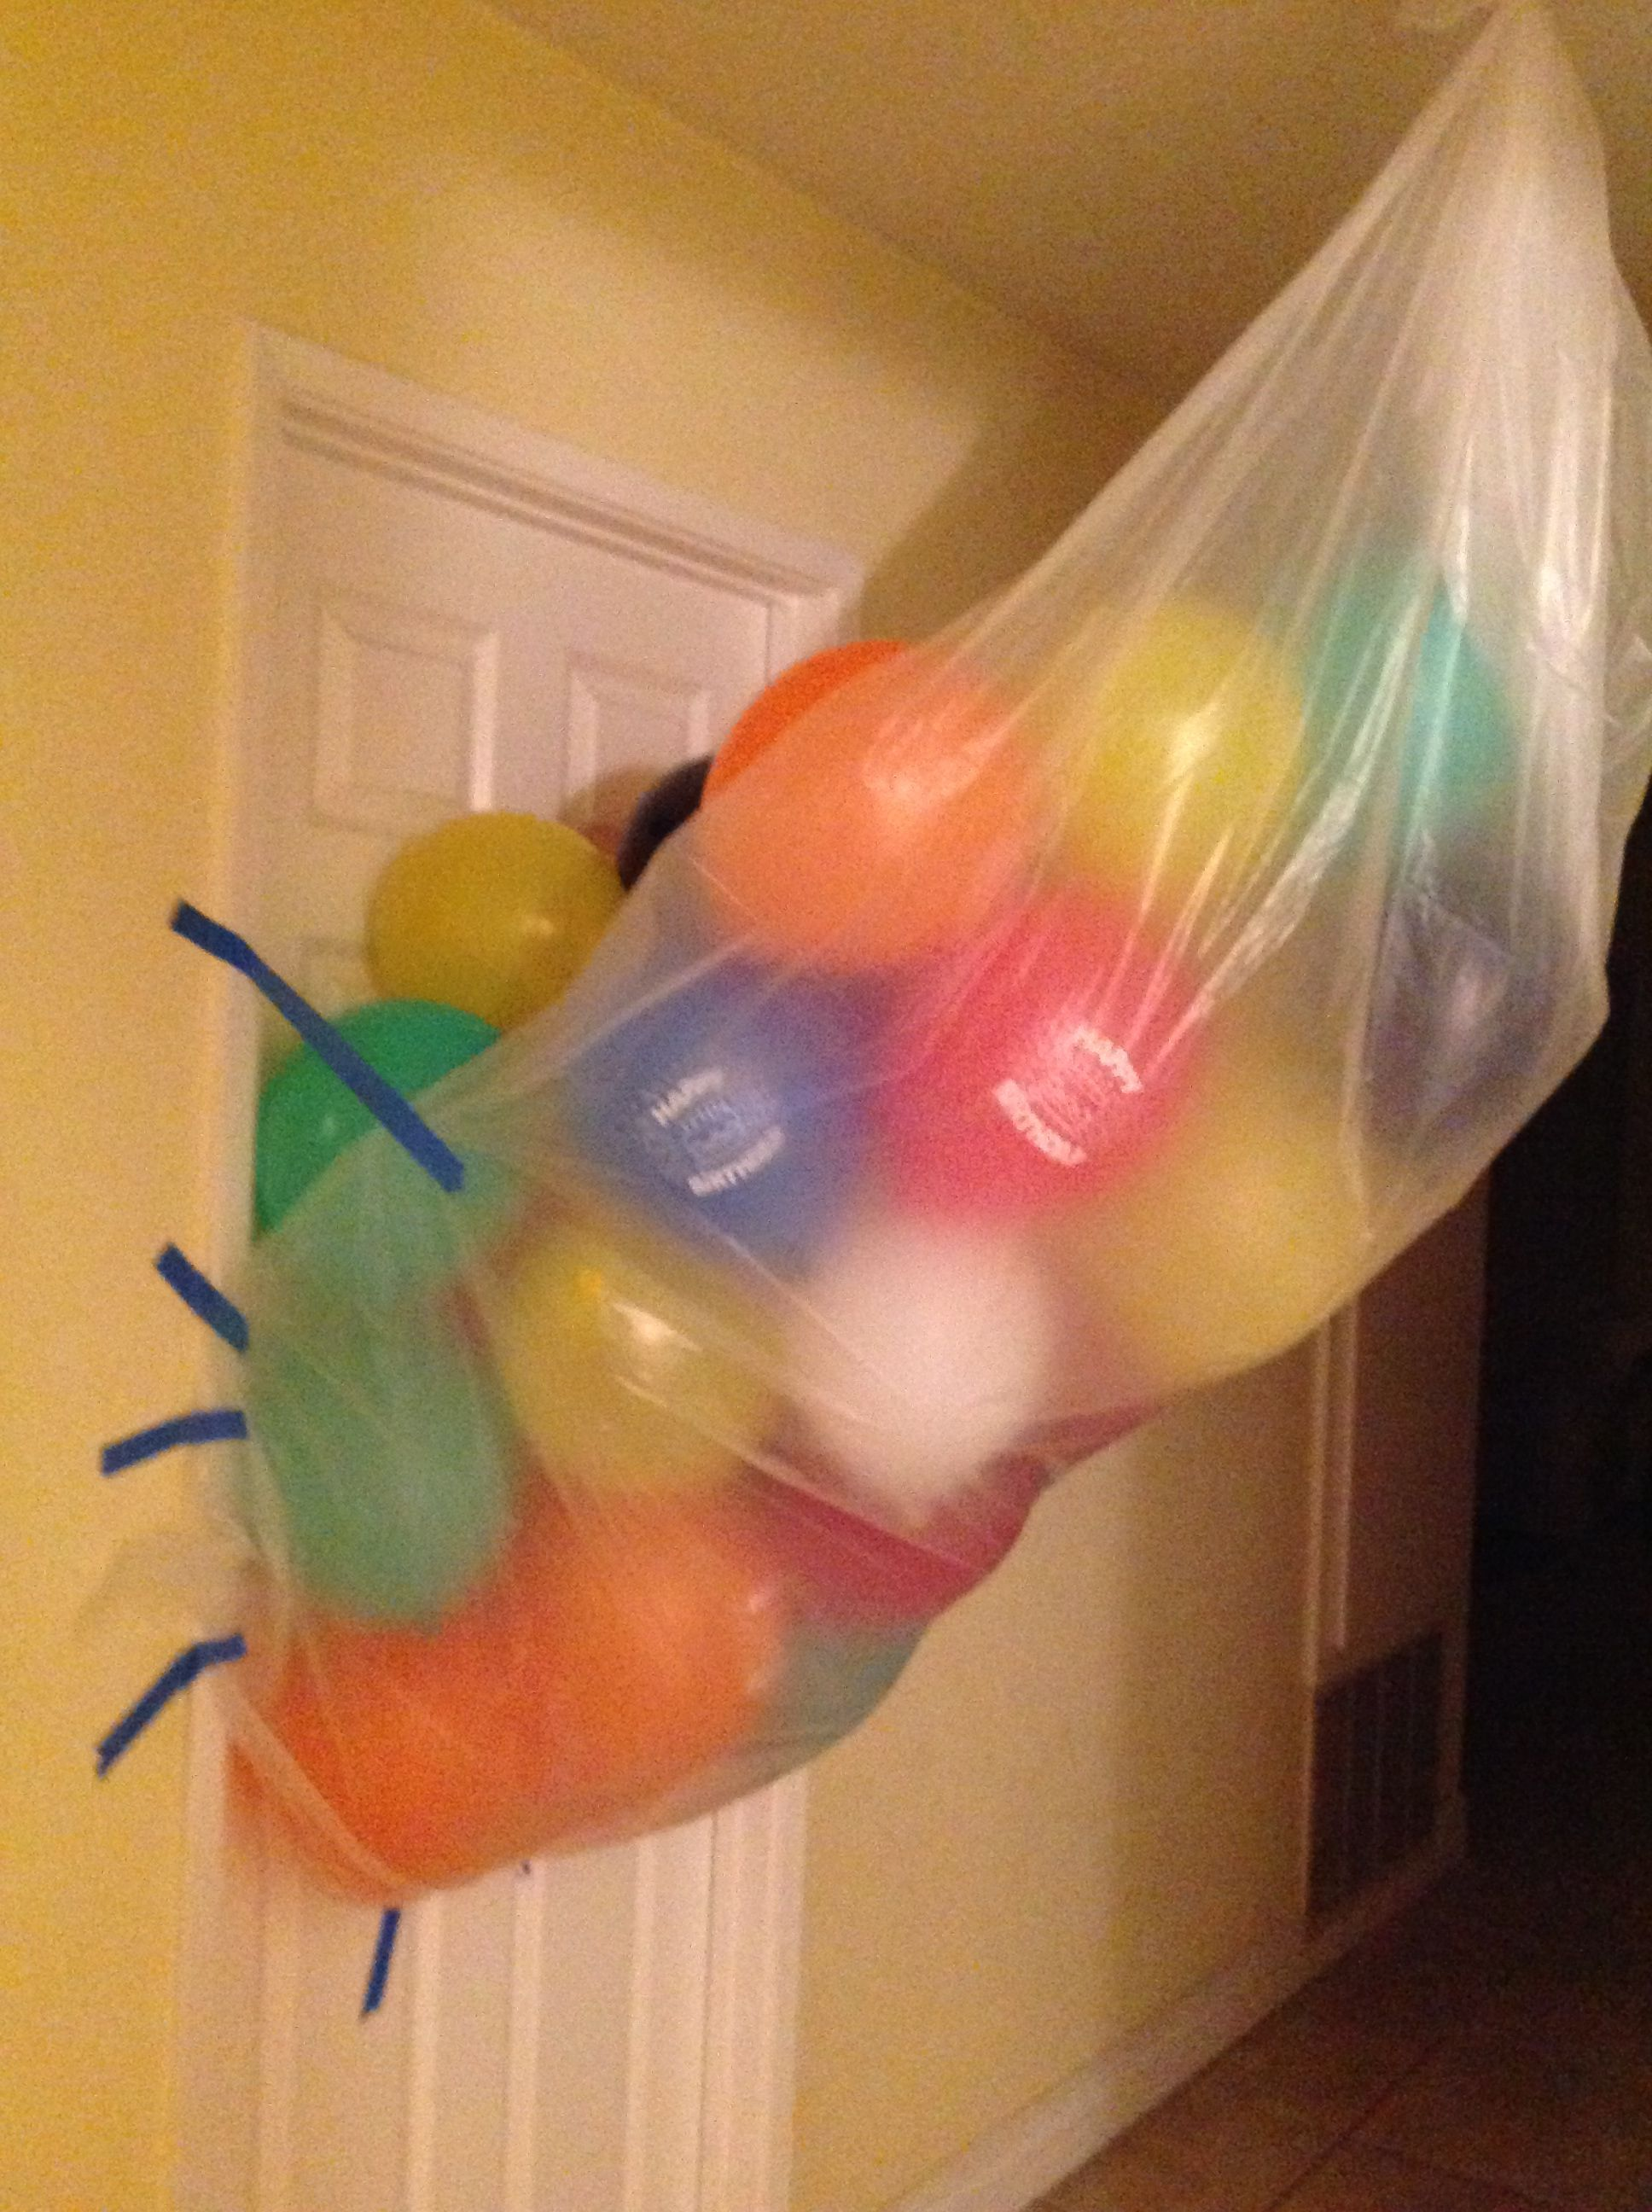 Balloon Birthday Surprise Aka Trick Saw It On Pinterest And Had To Try For My Daughters 12th Bday A Horrible Time Blowing Up The Balloons Because I